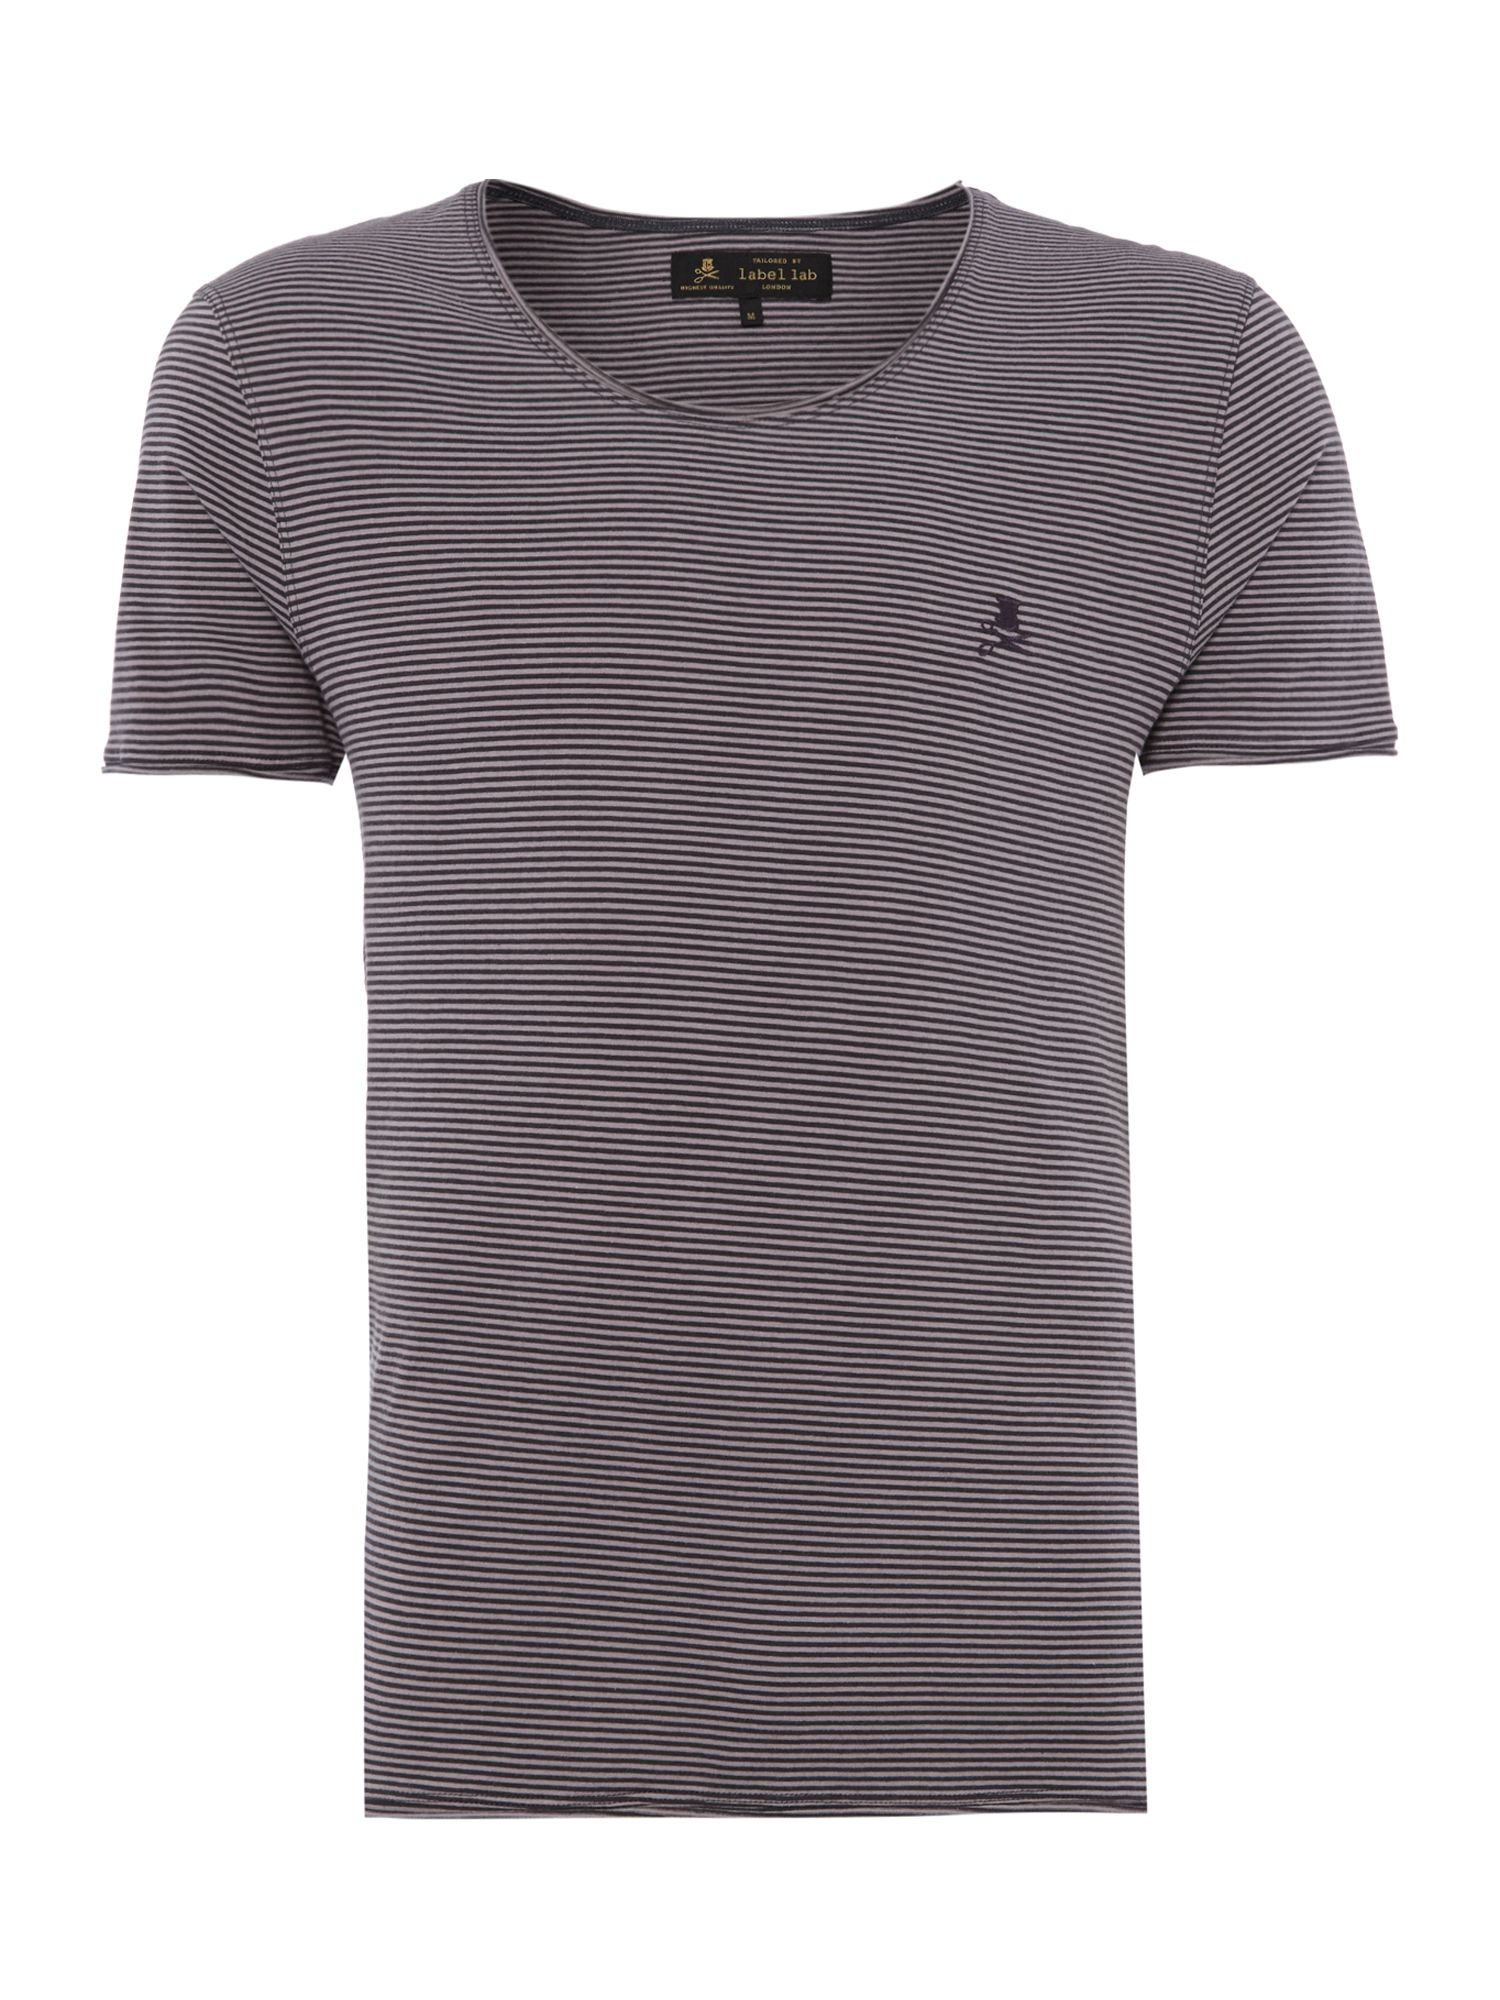 Froome striped tee